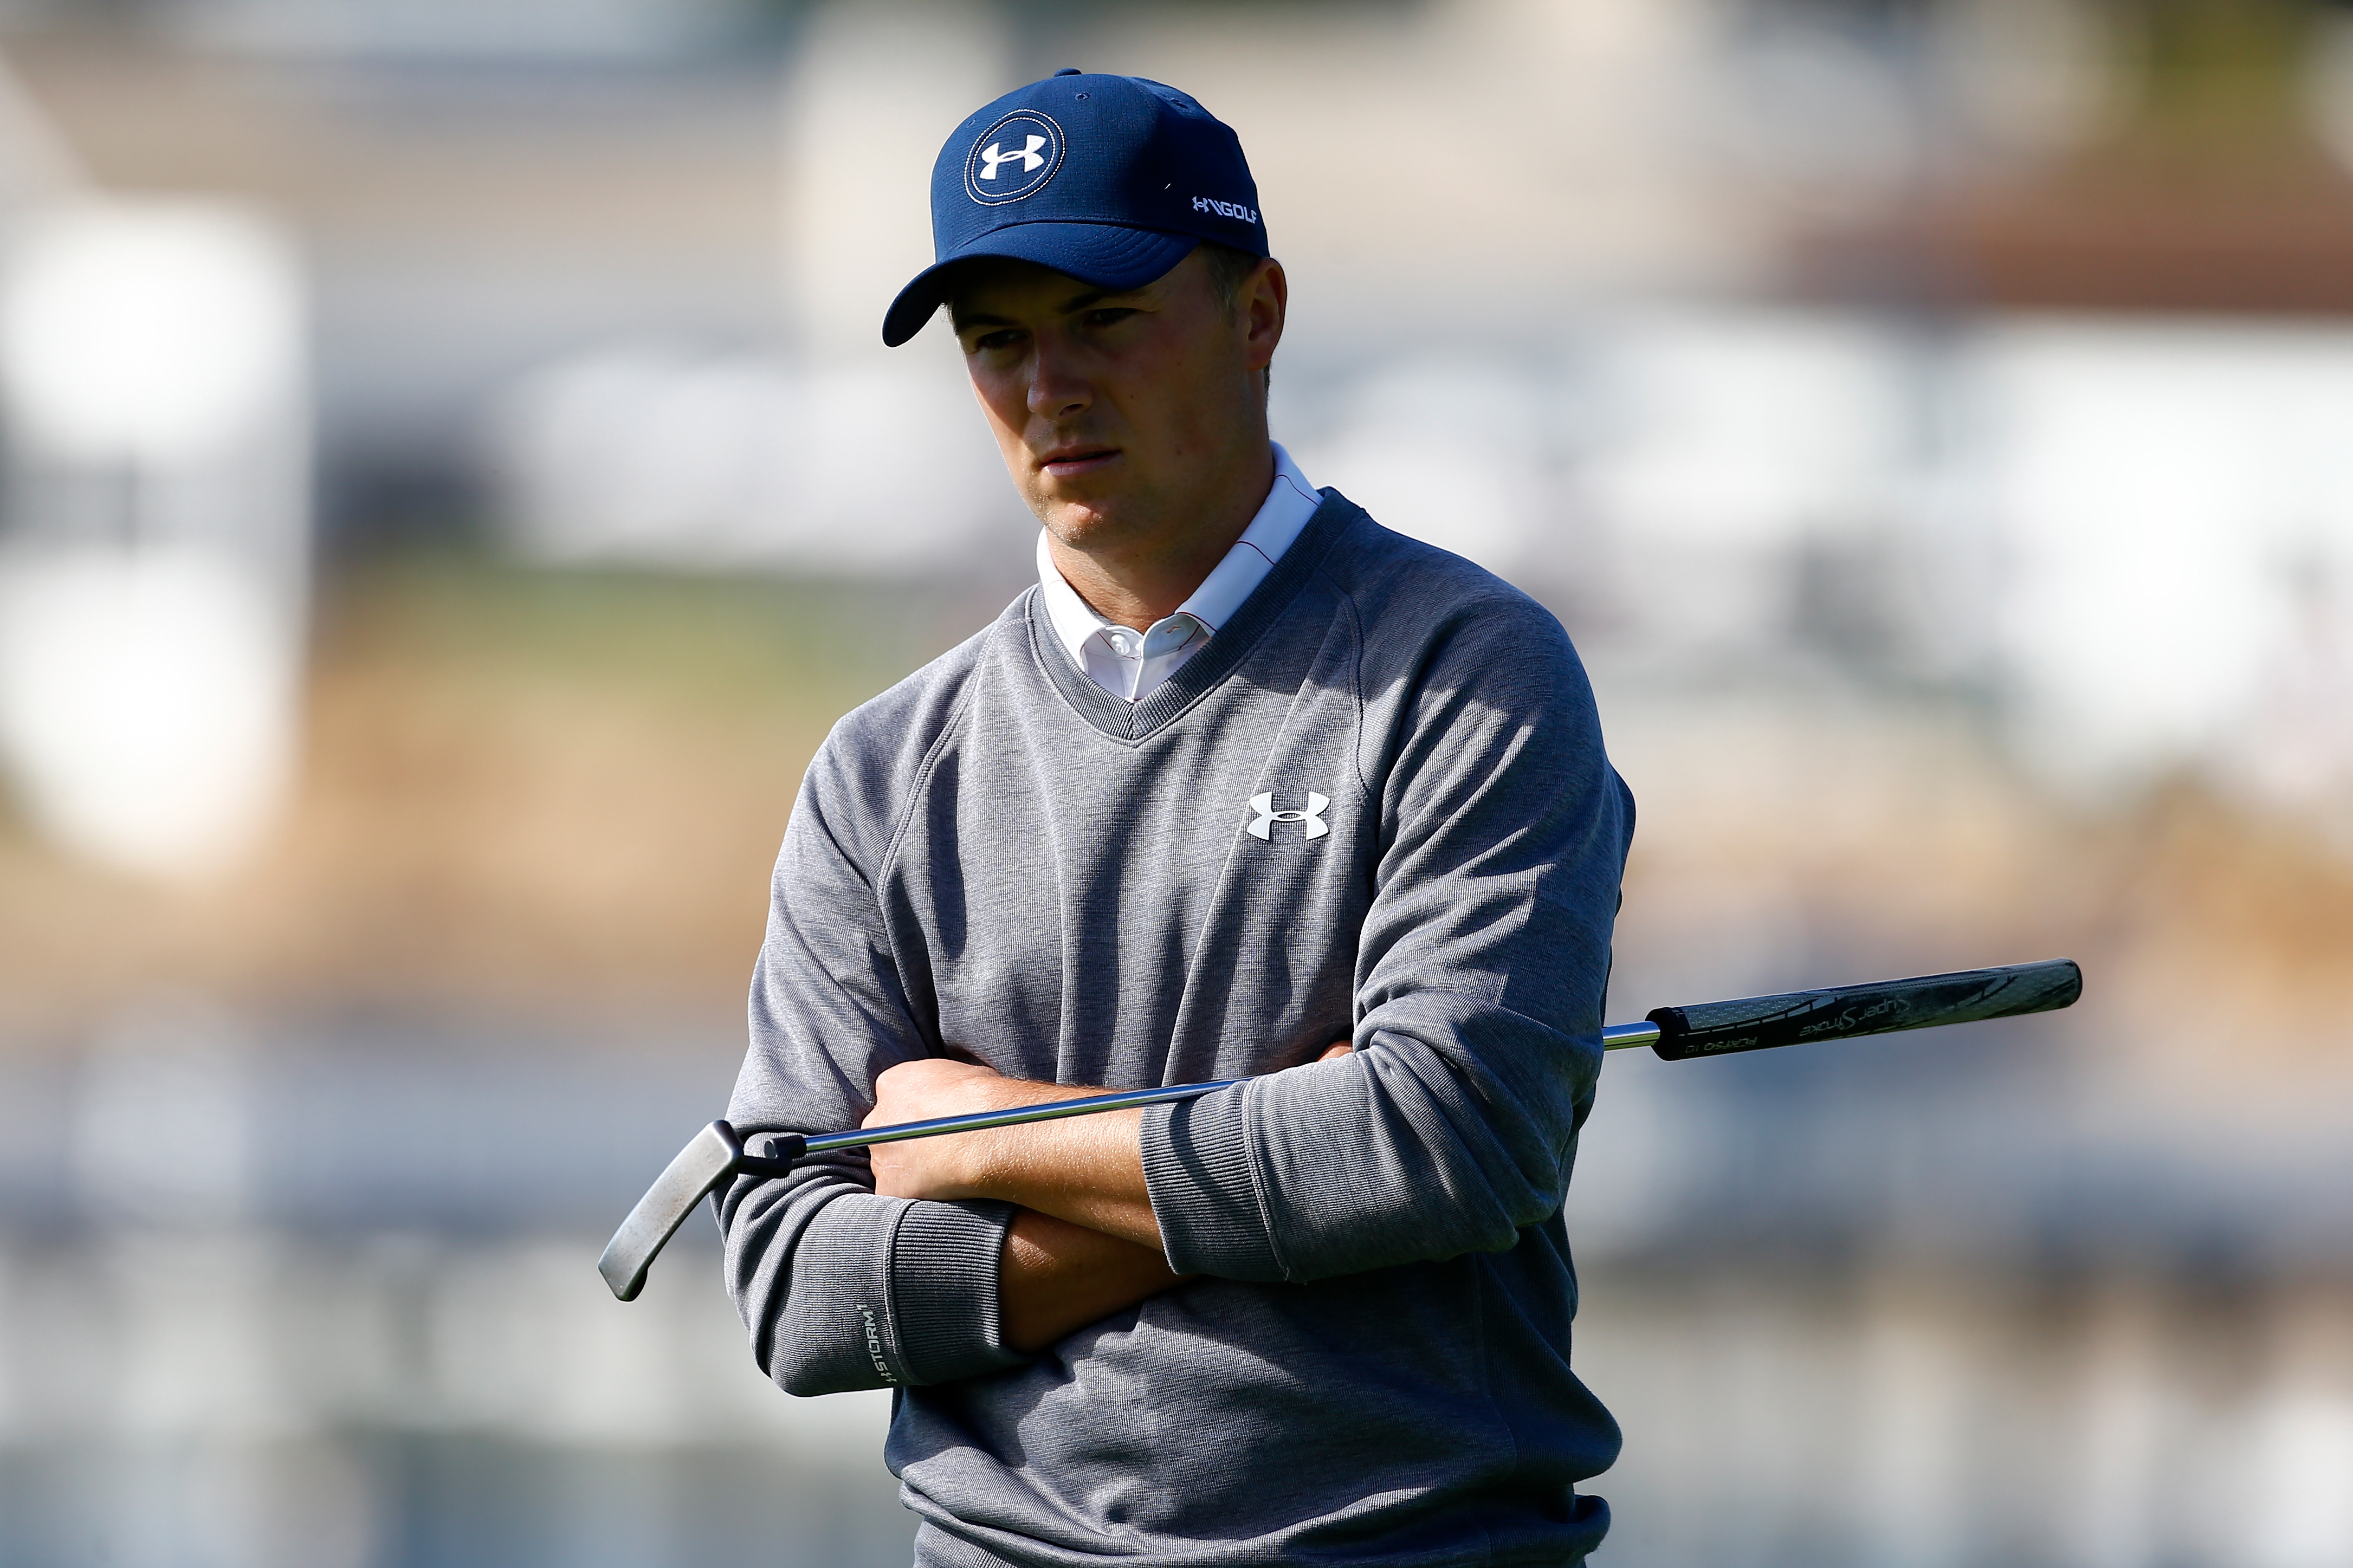 Jordan Spieth carried a six-shot lead into Sunday's final round at Pebble Beach.